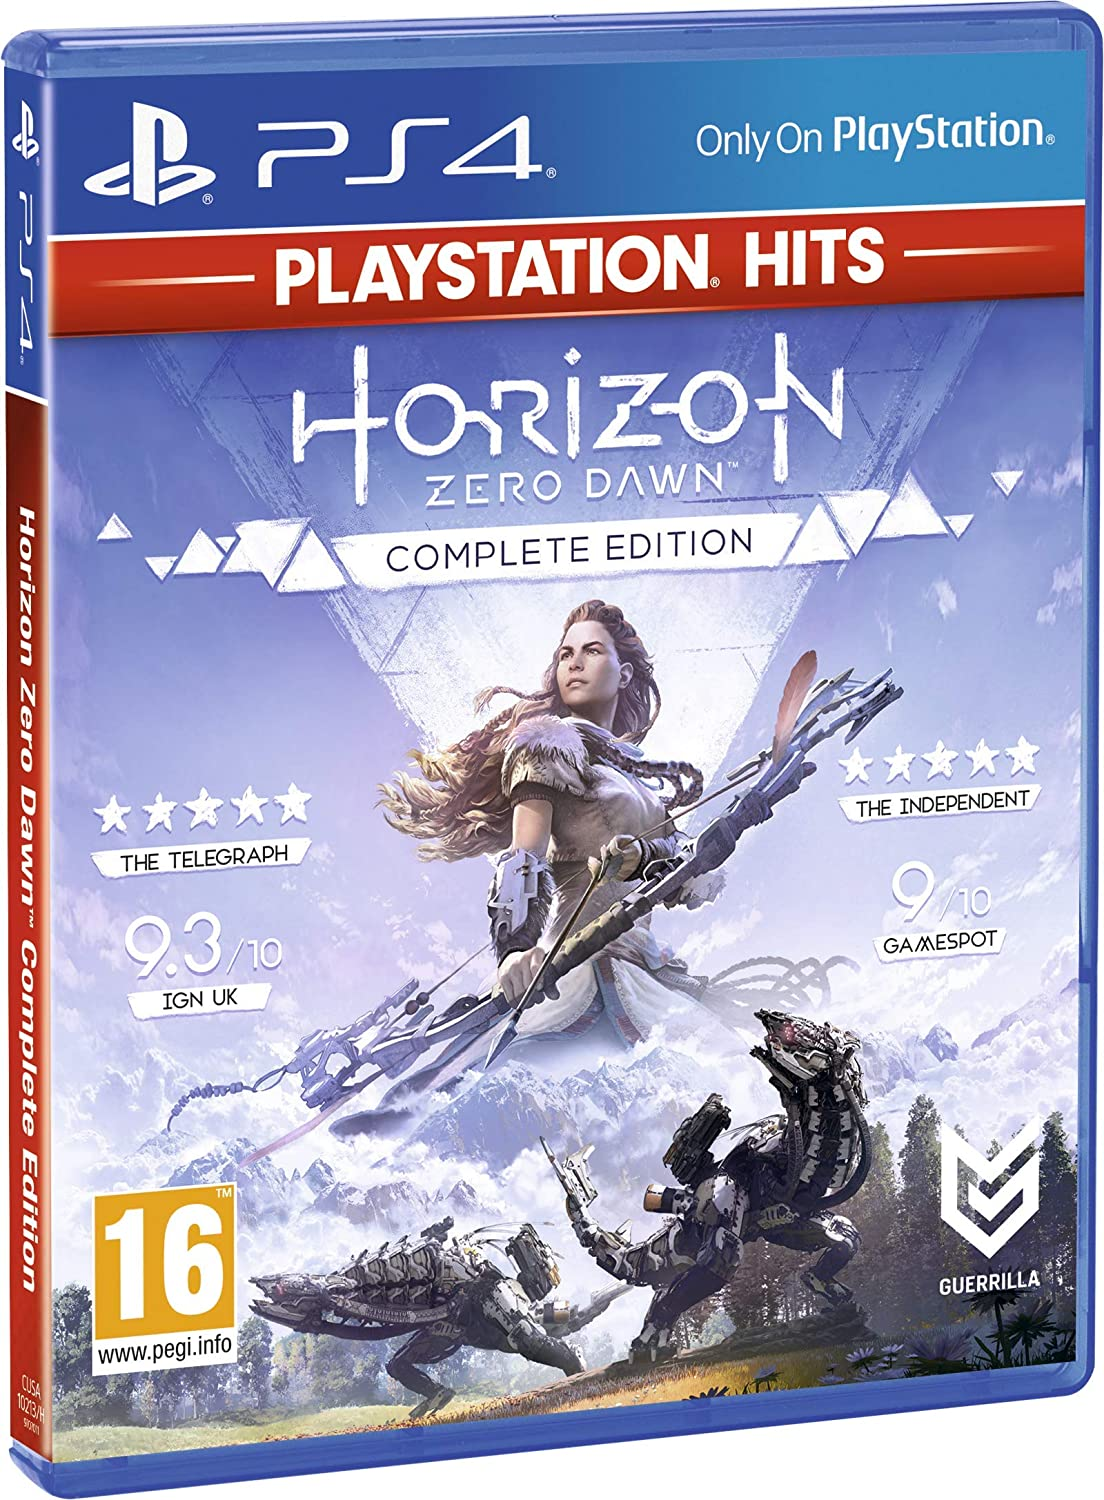 Horizon Zero Dawn Complete Edition PlayStation HITS - PlayStation ...